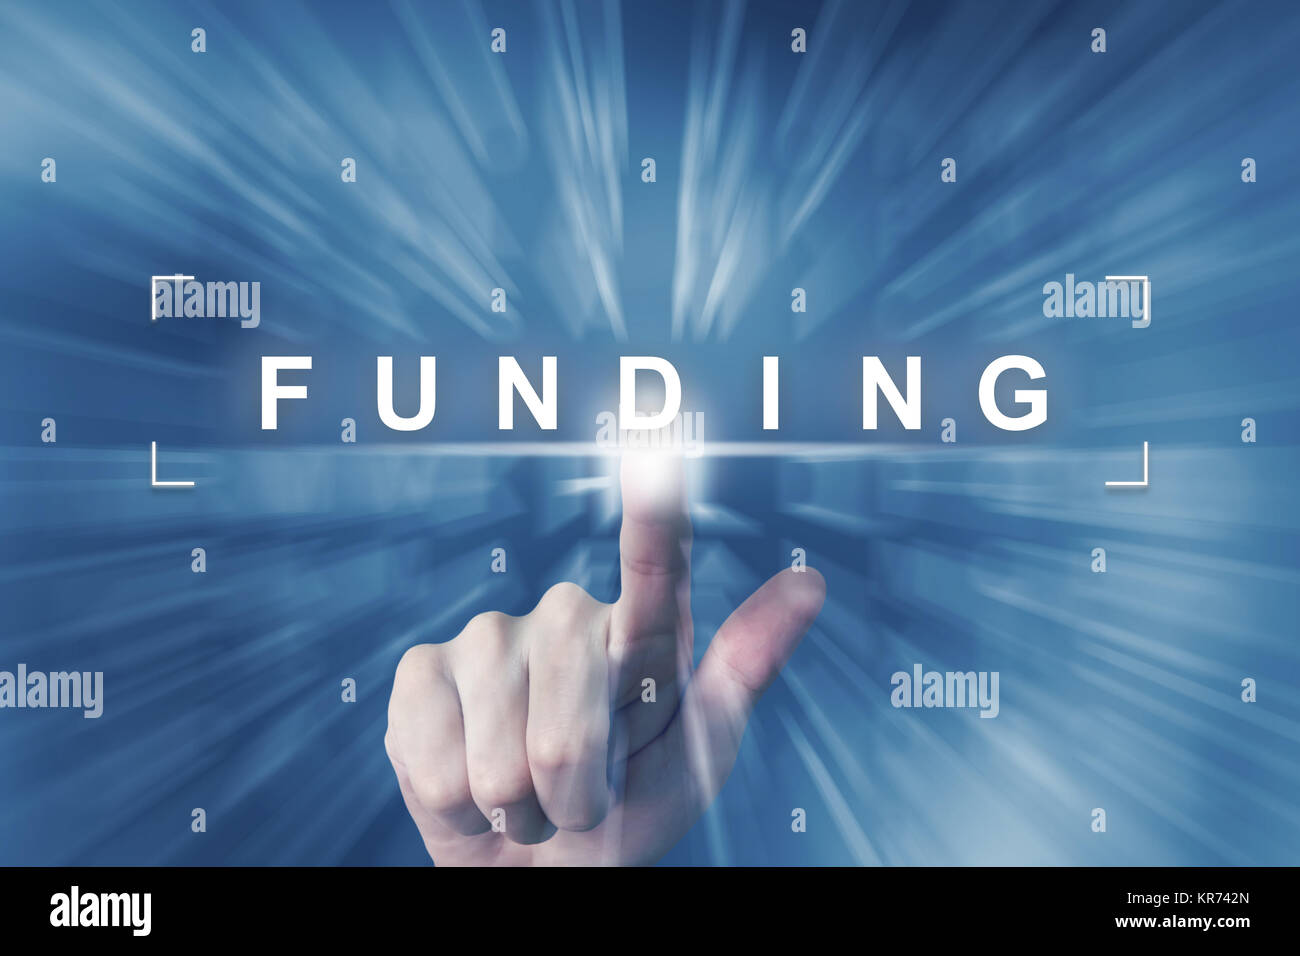 hand clicking on financial funding button Stock Photo